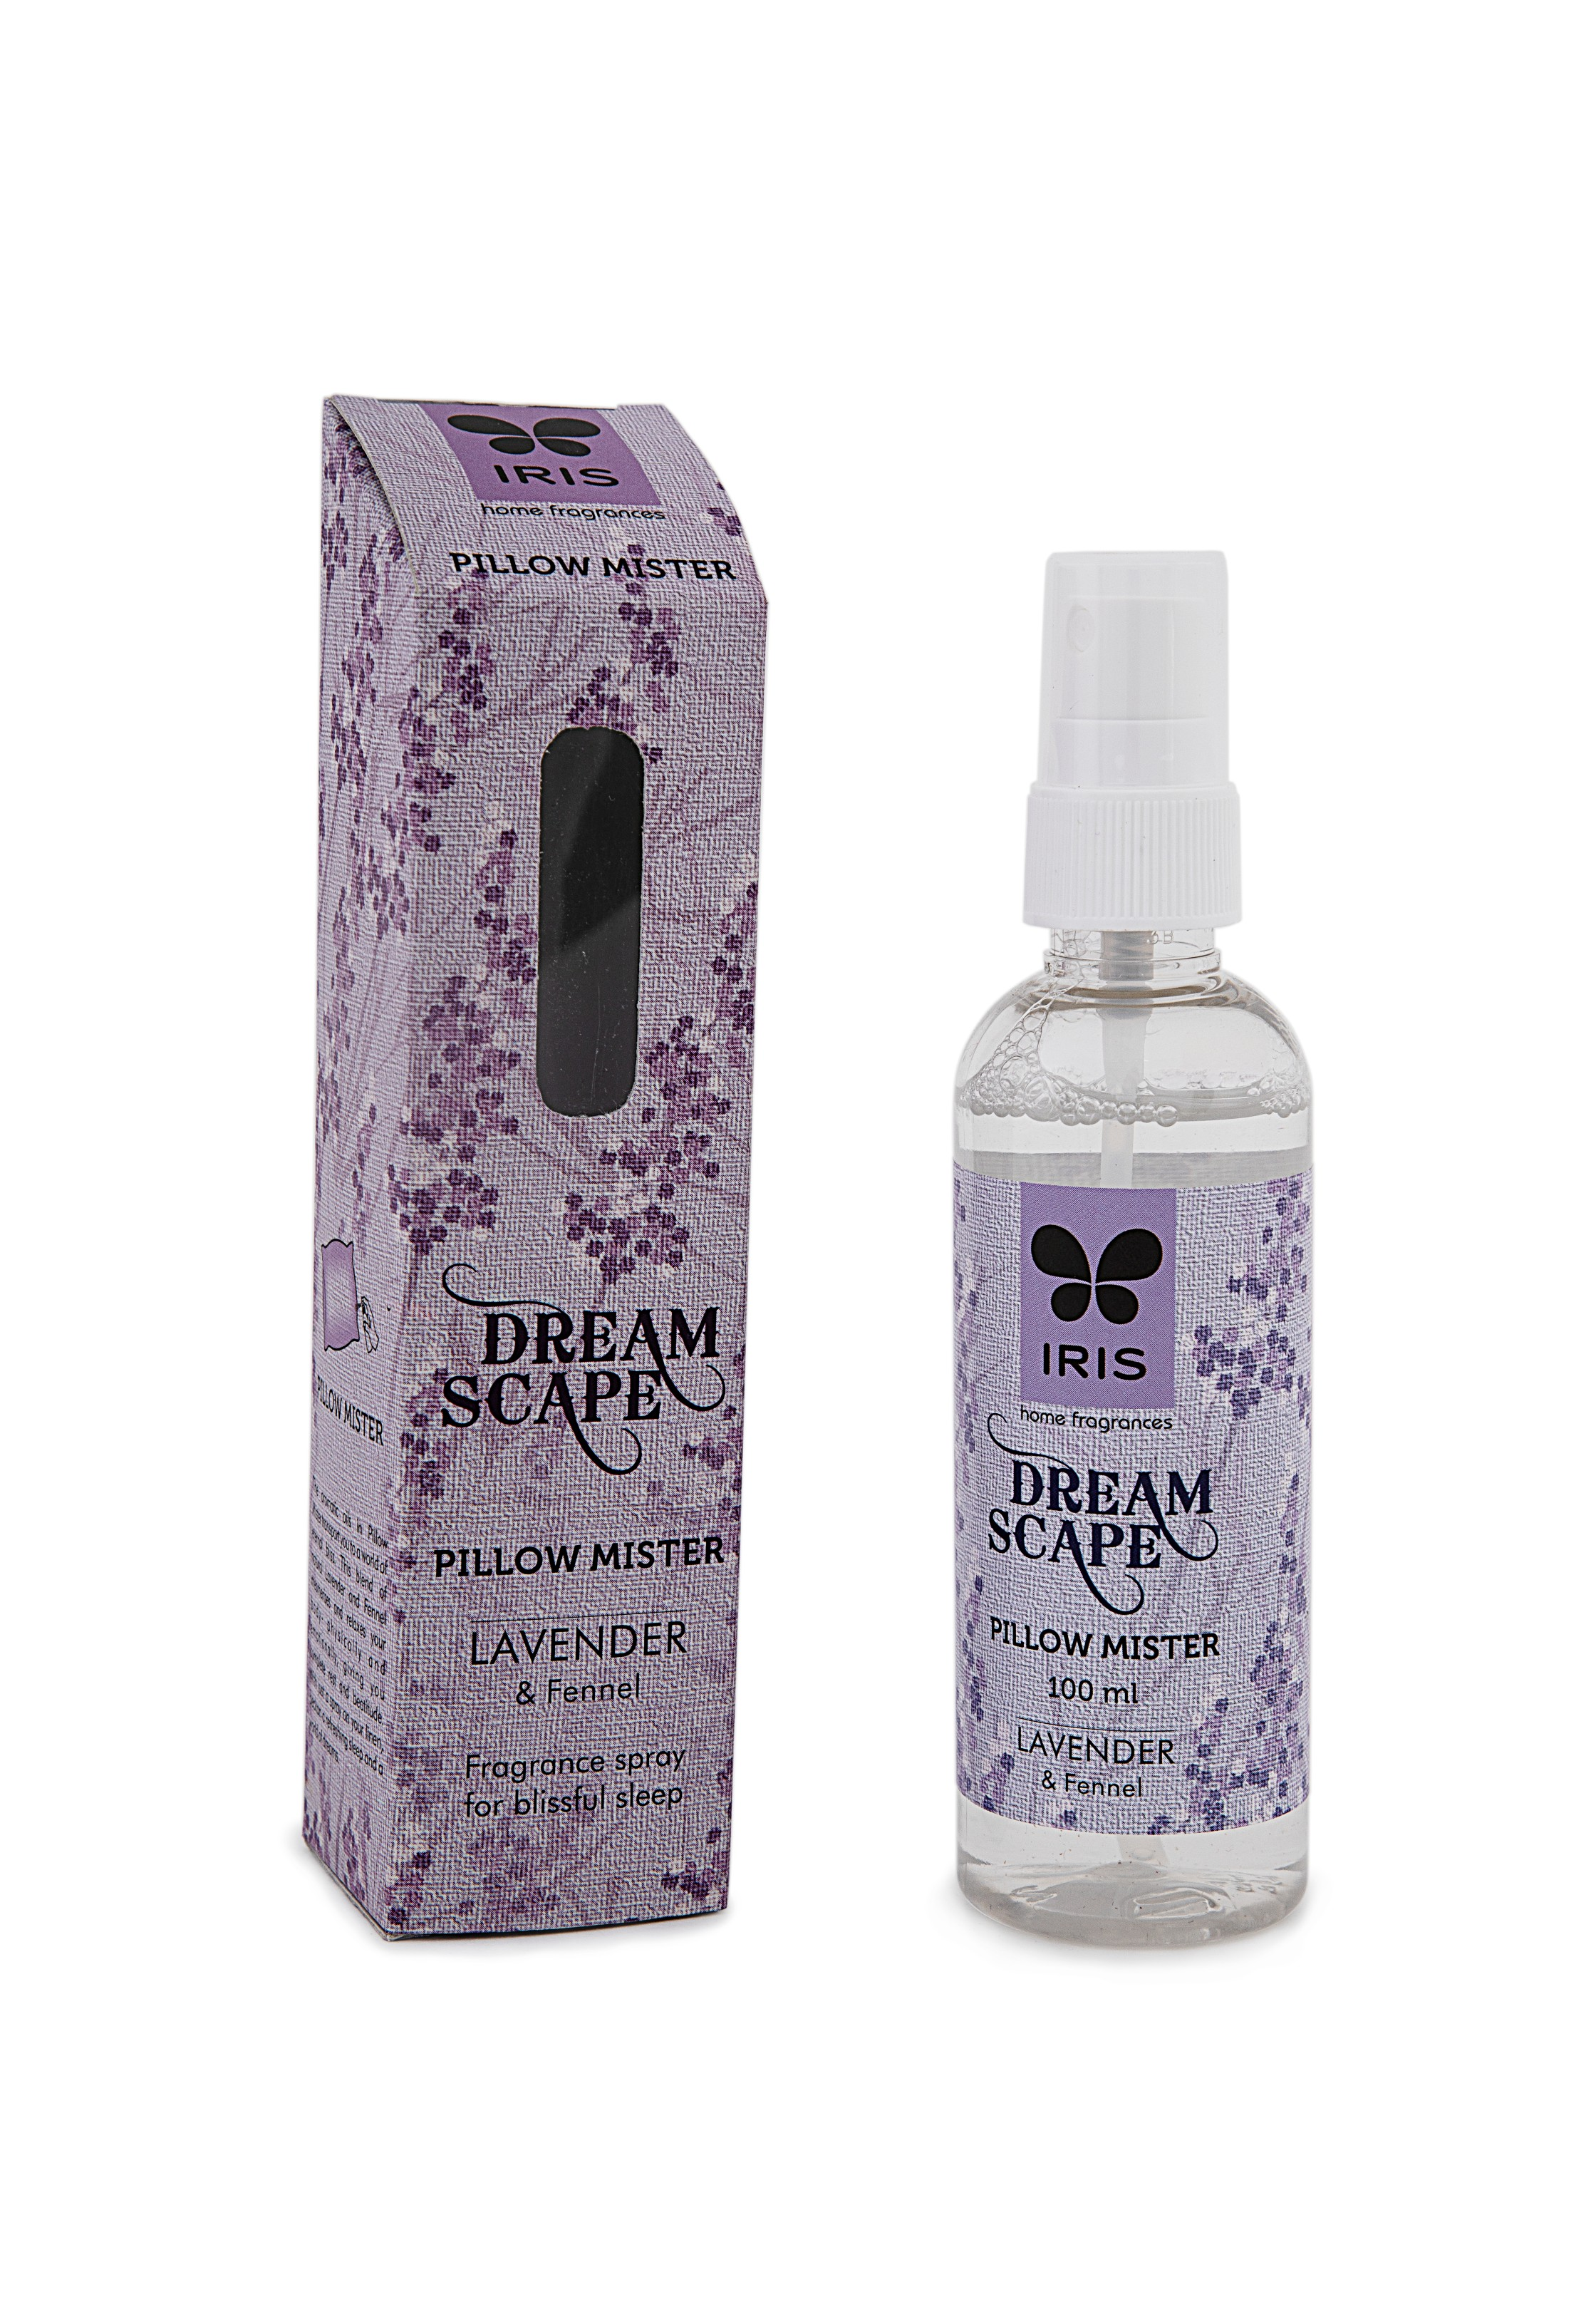 Iris Dream Scape Lavender & Fennel Pillow Mister Ceramic Scented Oil in Lavender Colour by HomeTown